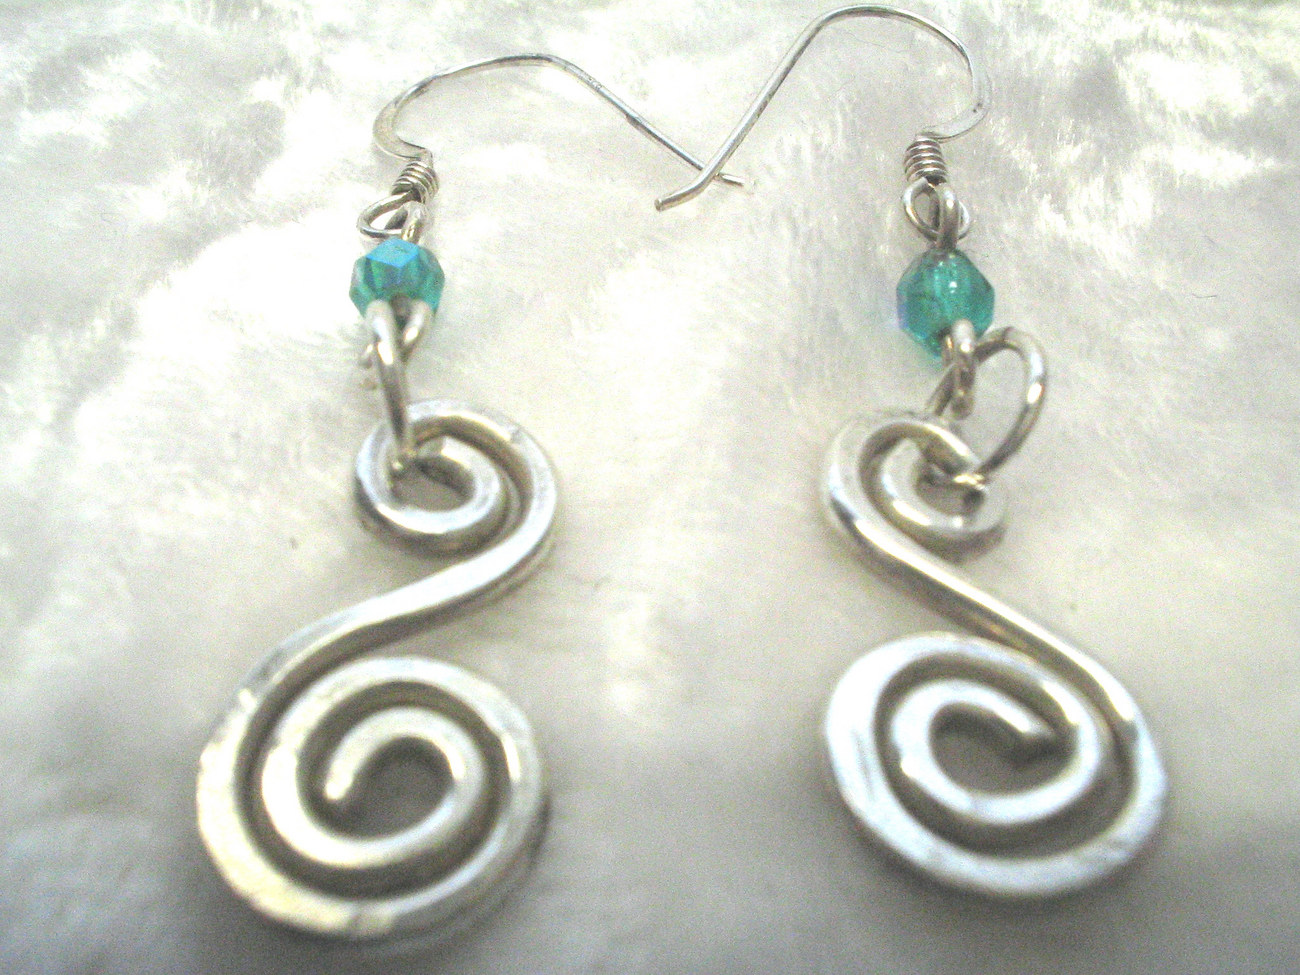 Shanrocks Hammered & swirled SS earrings